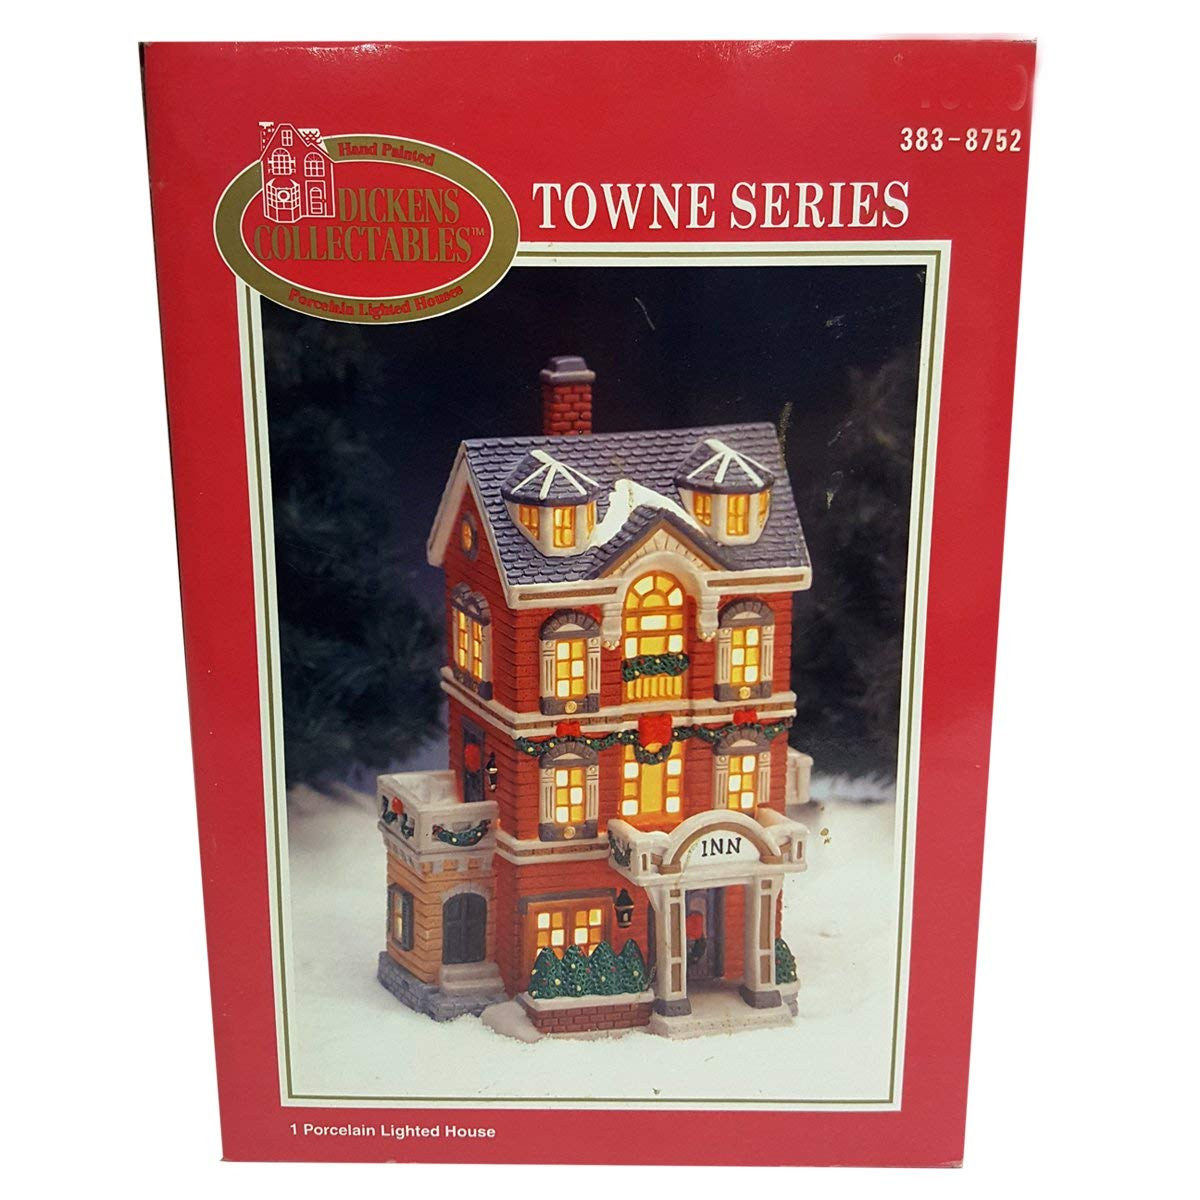 Dickens Collectibles 1997 Towne Series Porcelain Lighted House - Inn 383-8752